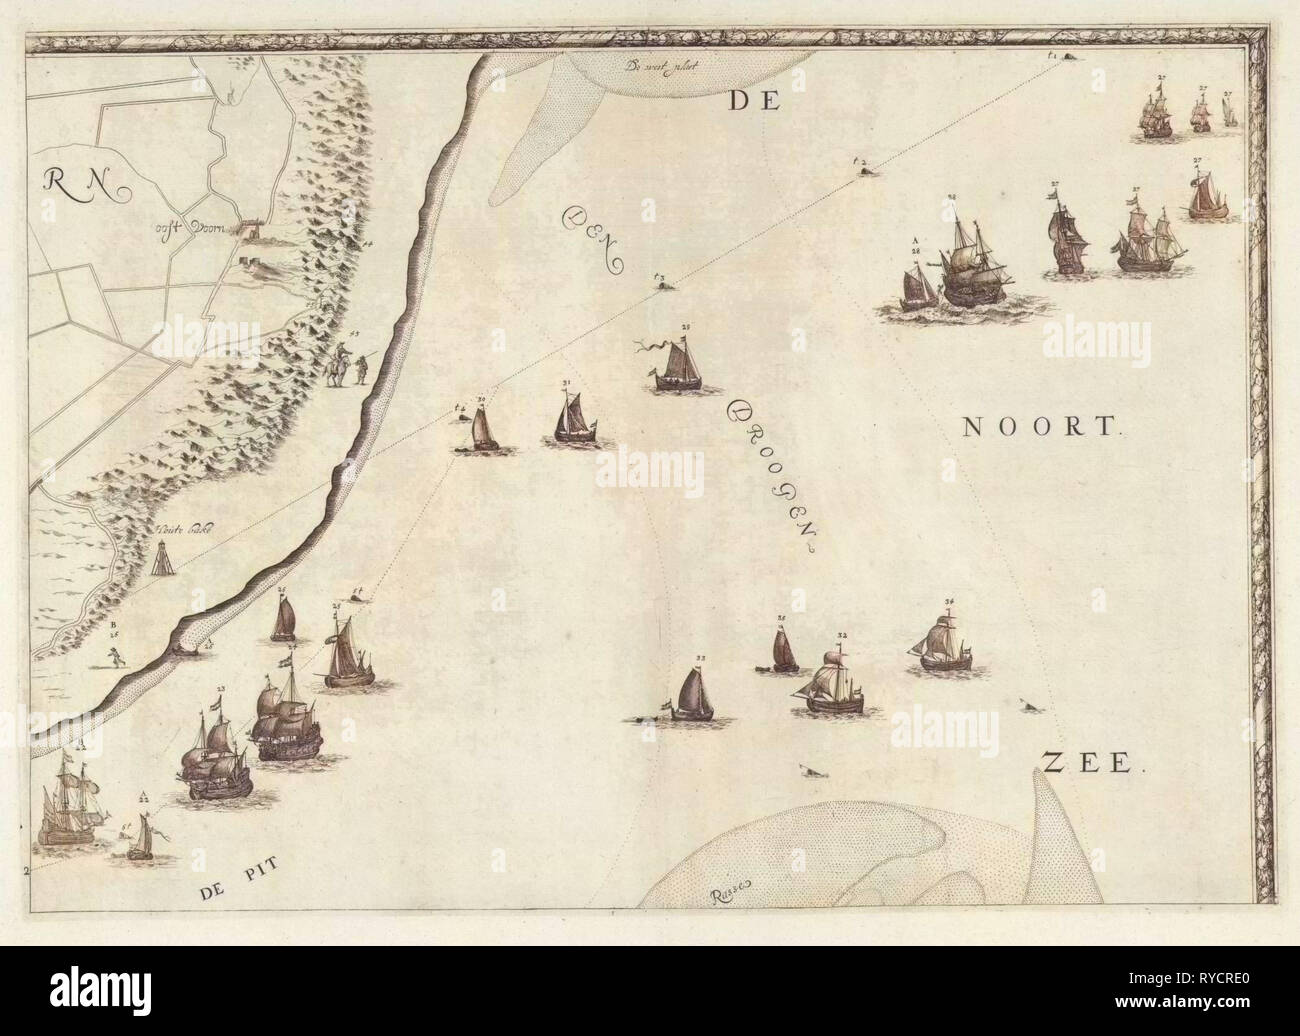 Map of the North Sea and the coast of Holland, Jacob Quack, 1665 - Stock Image